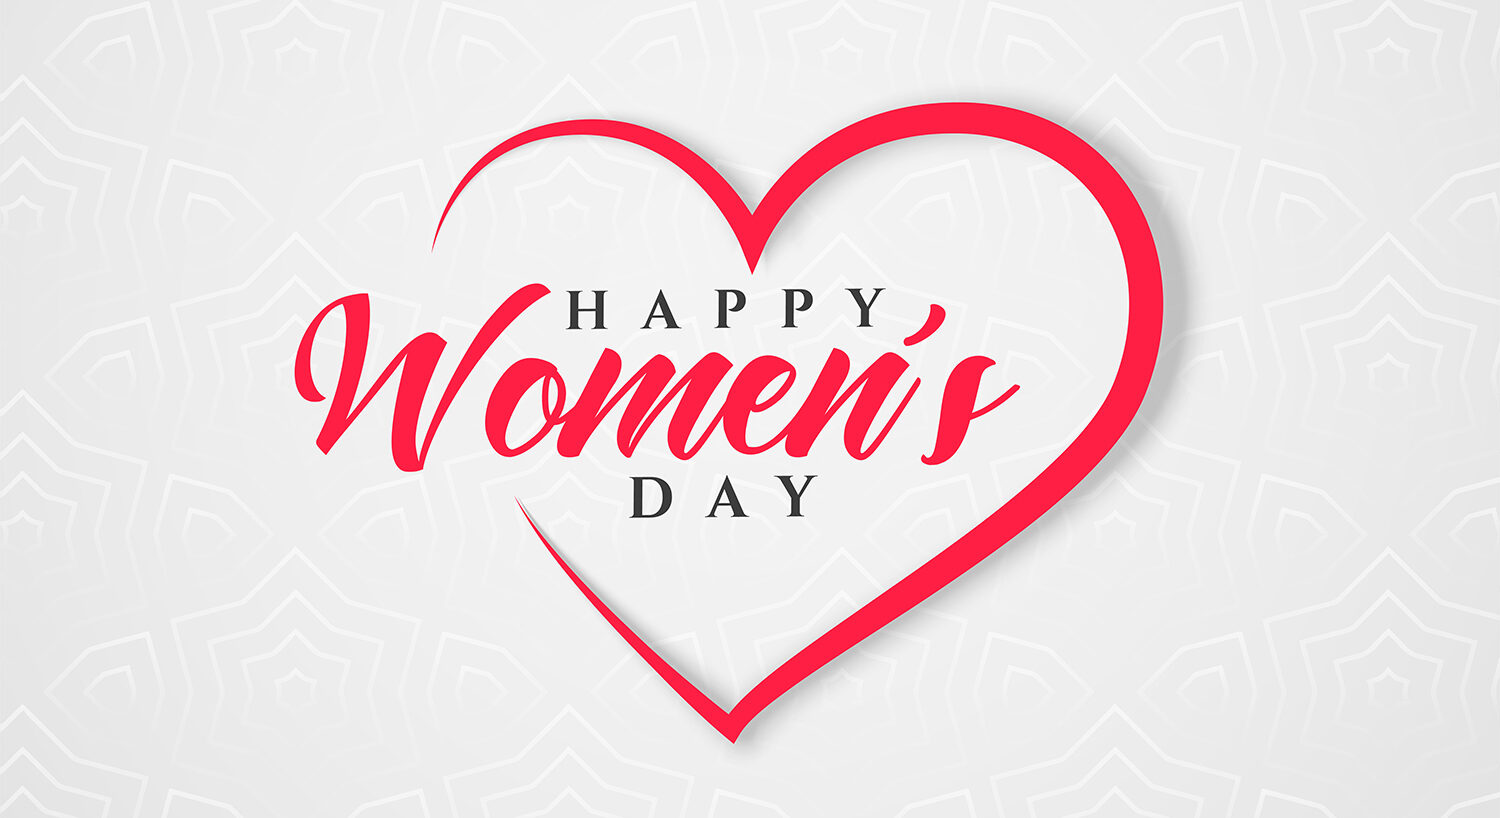 Happy Women's Day 2021